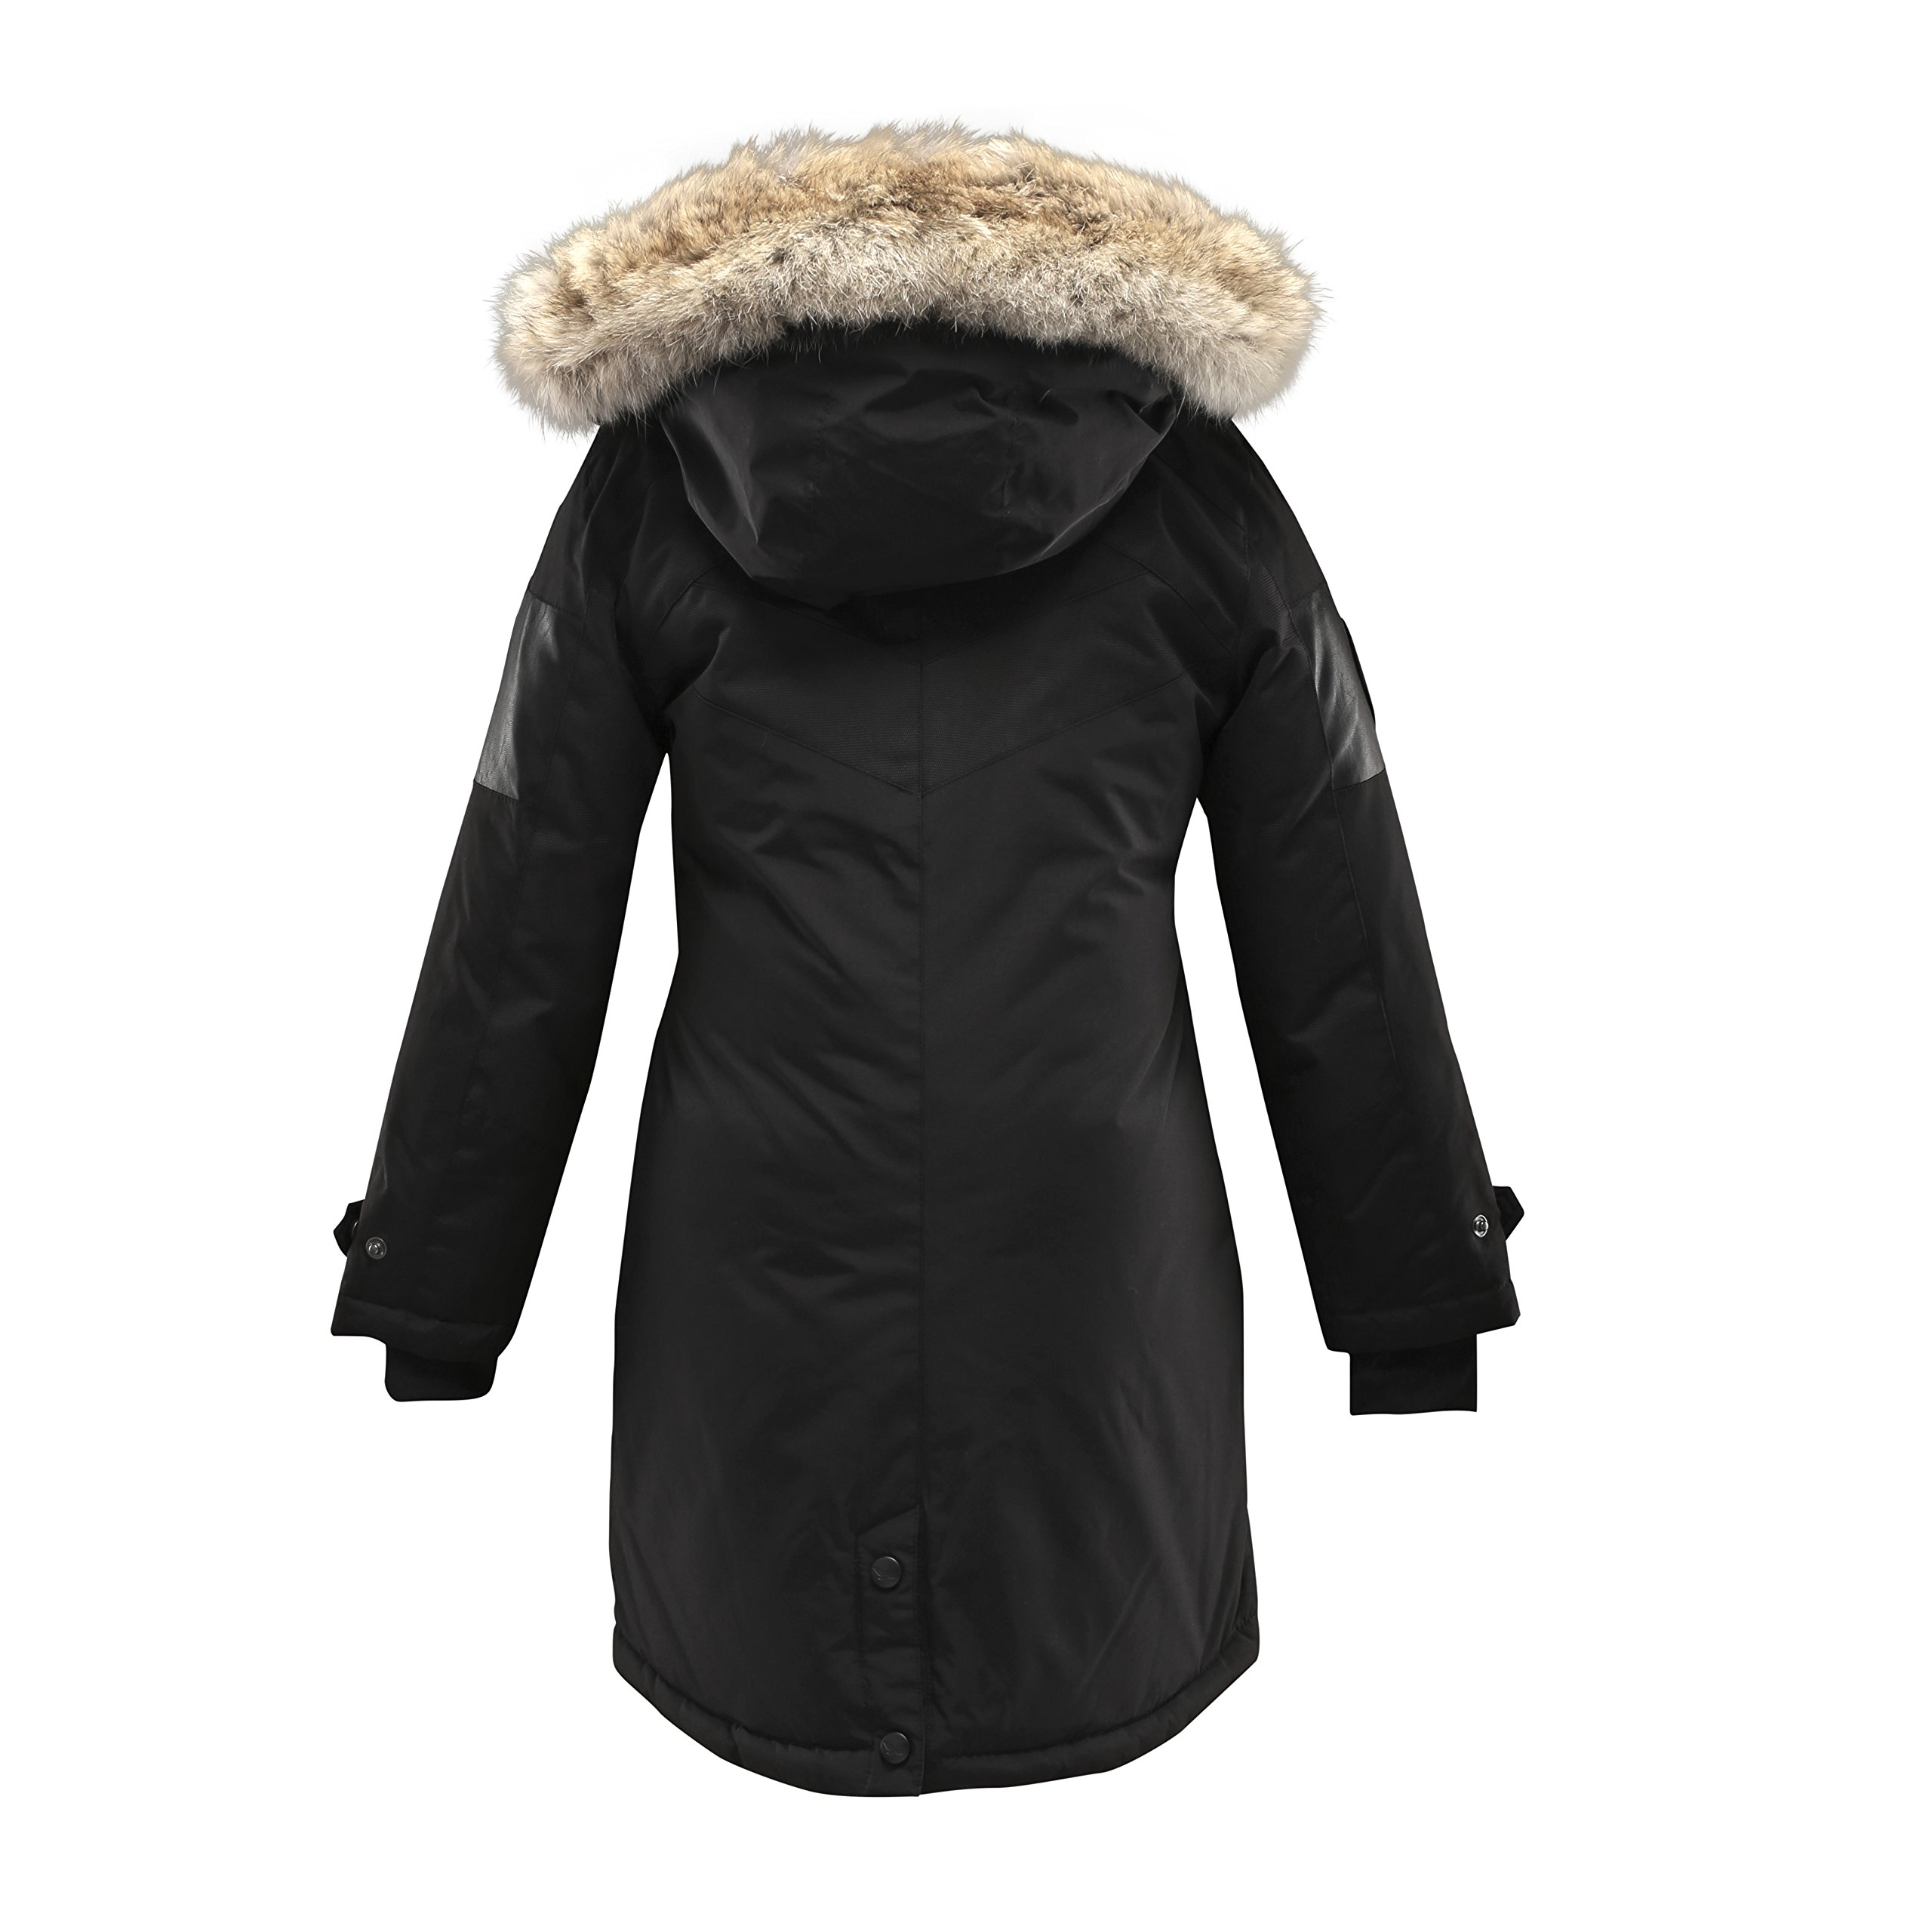 Triple F.A.T. Goose Embree Girls Down Jacket Parka with Real Coyote Fur (10, Black) by Triple F.A.T. Goose (Image #2)